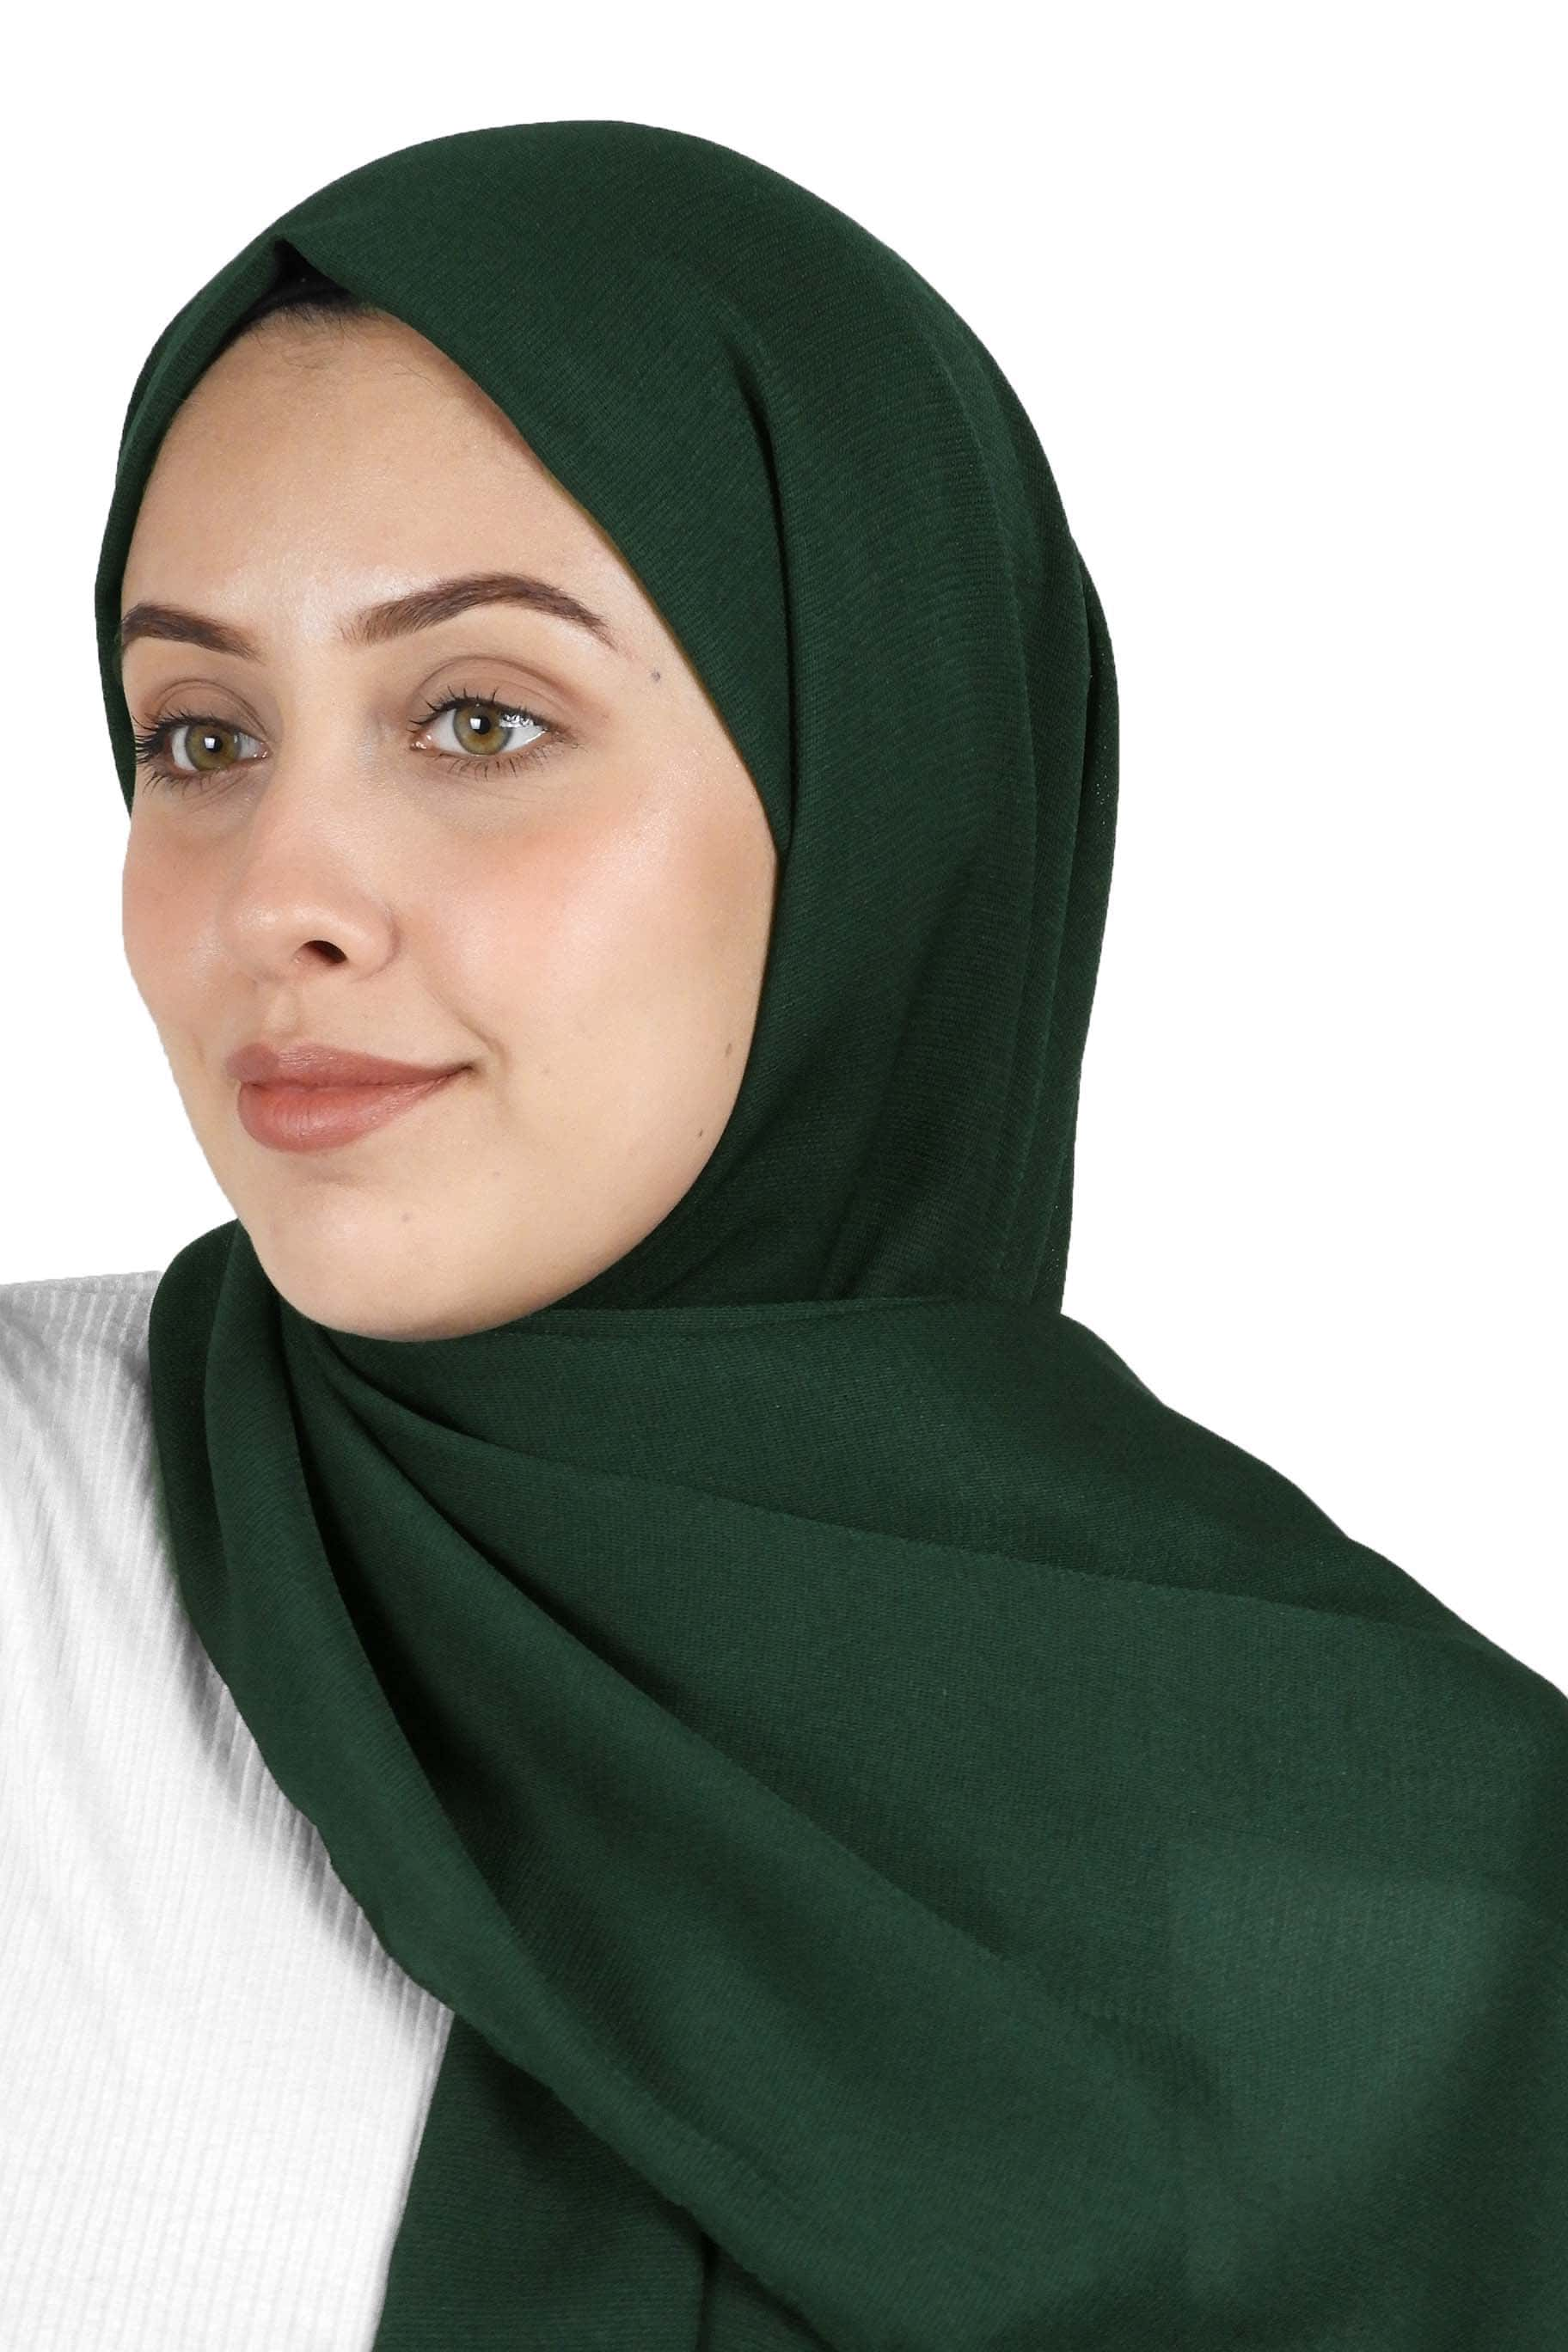 Emerald Green Jute Cotton - Jute-Cotton Hijab - The Modest Look